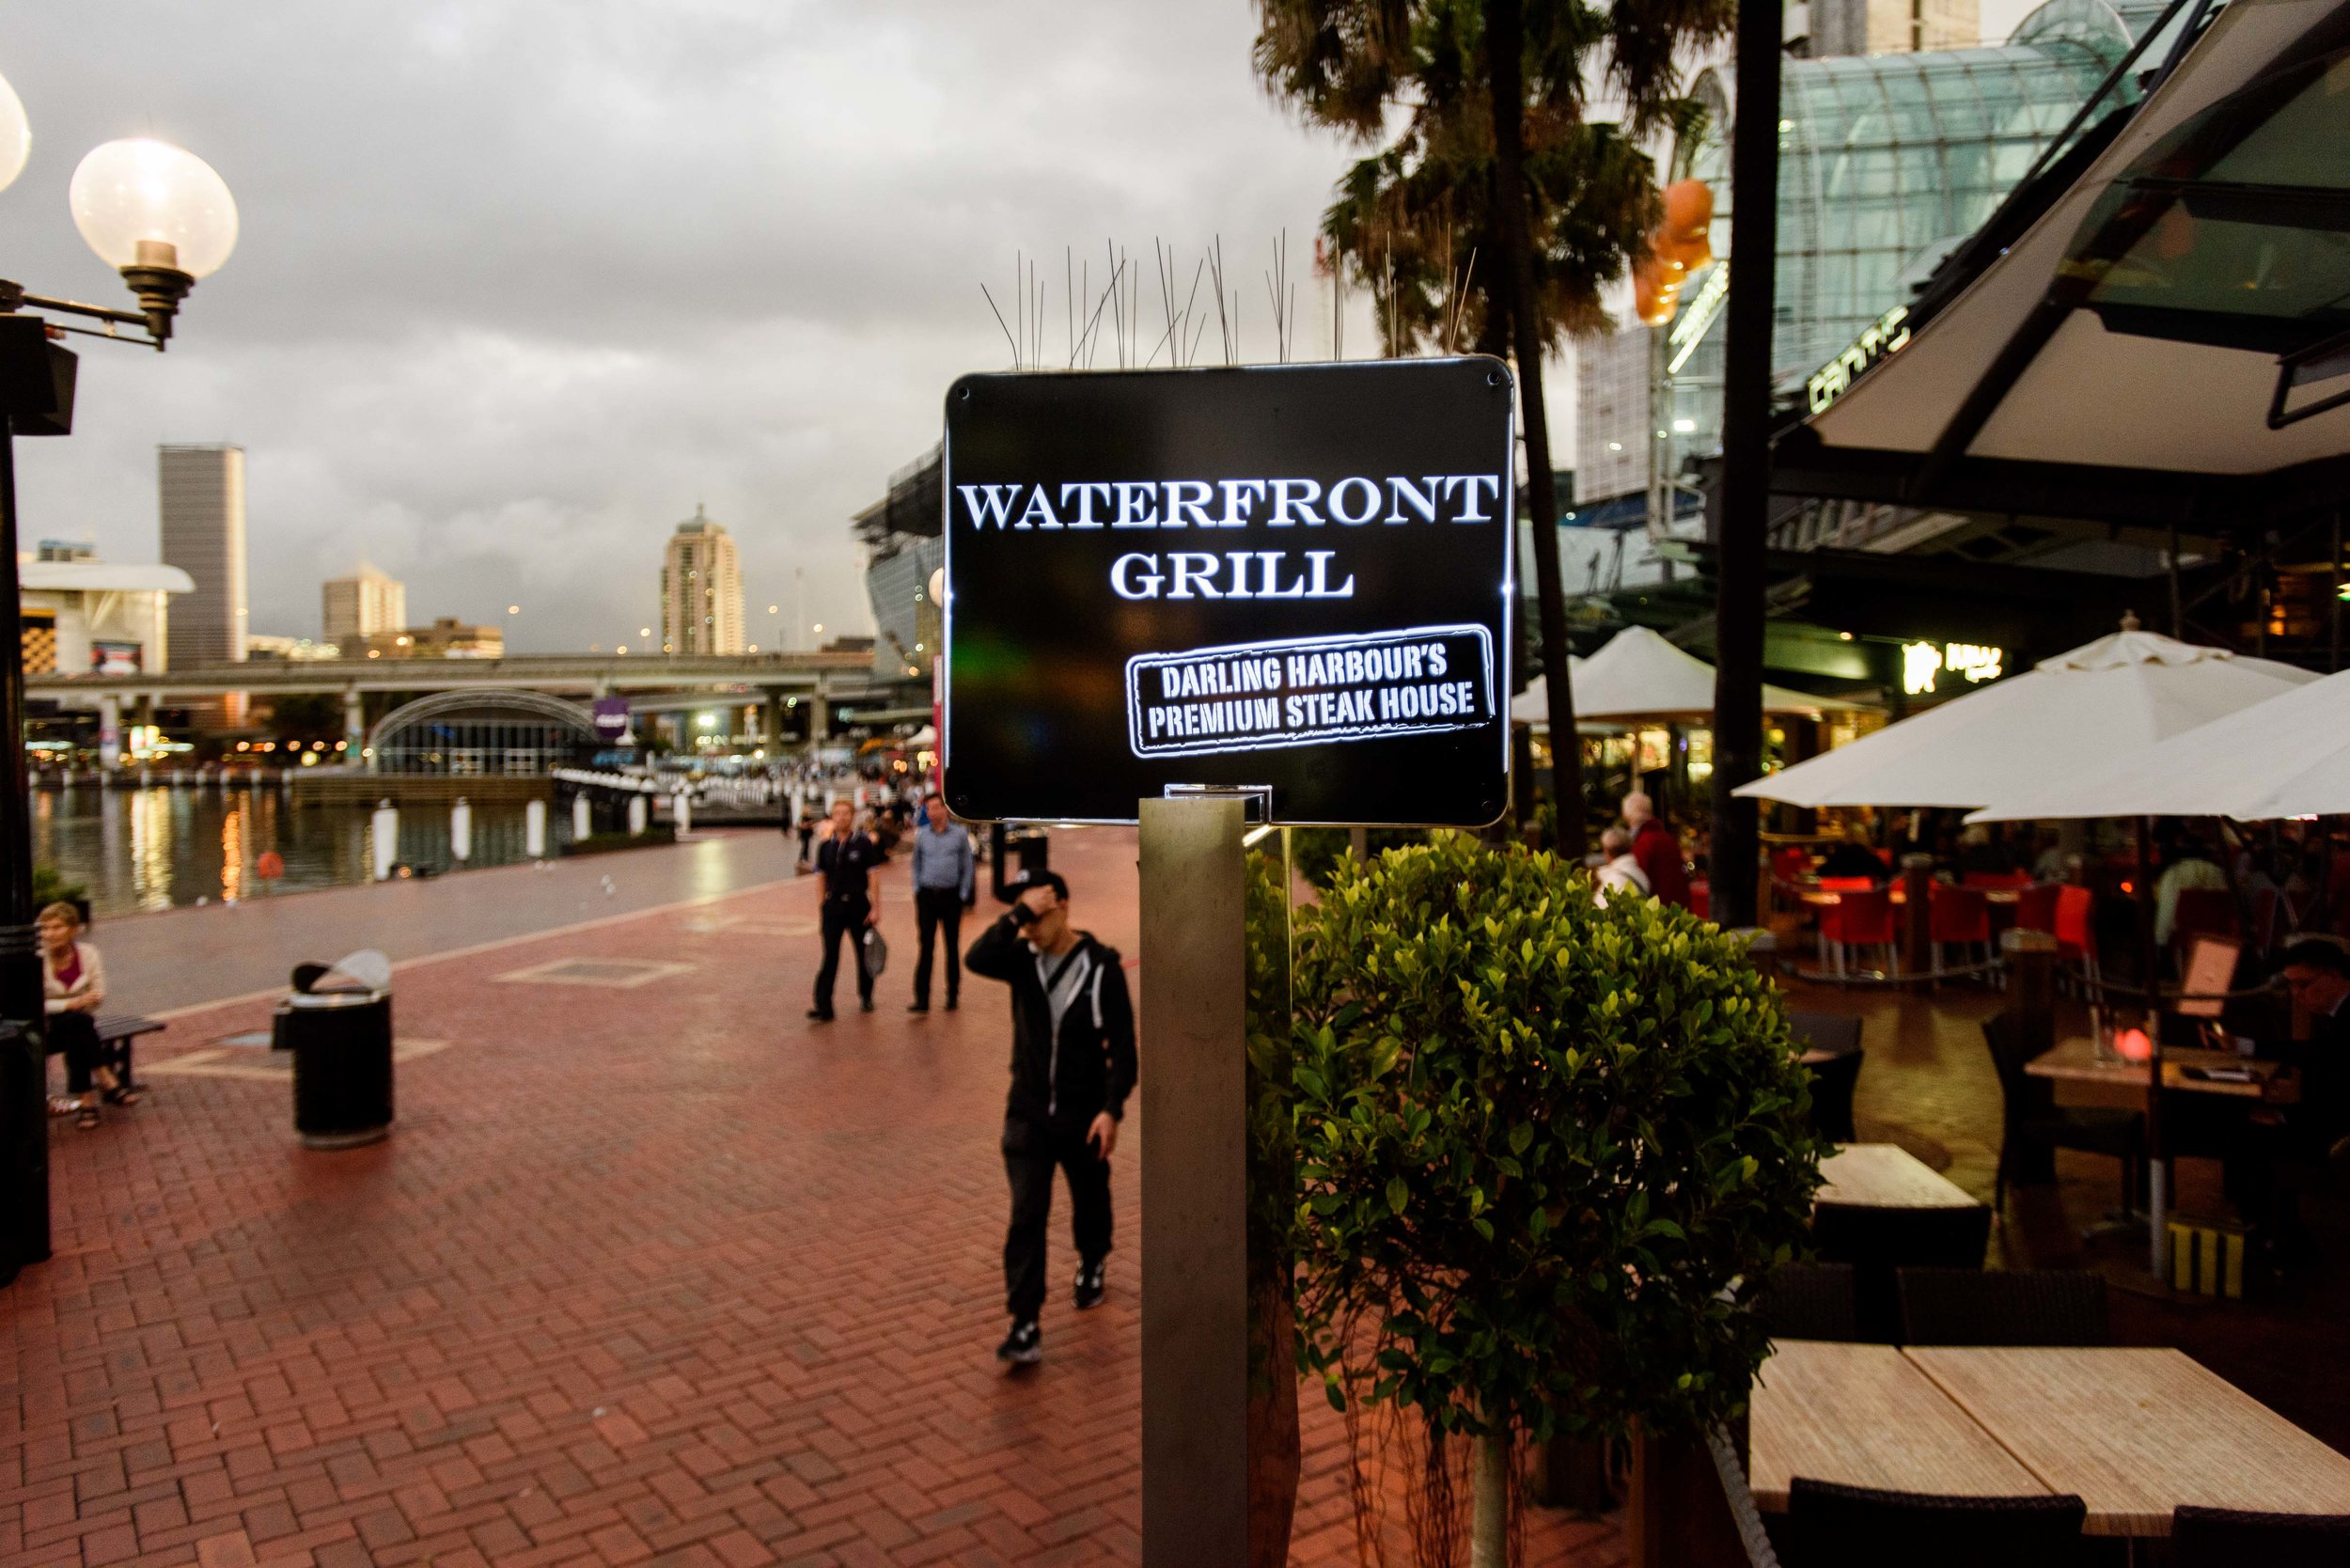 Waterfront-Grill-Gallery-9.jpg